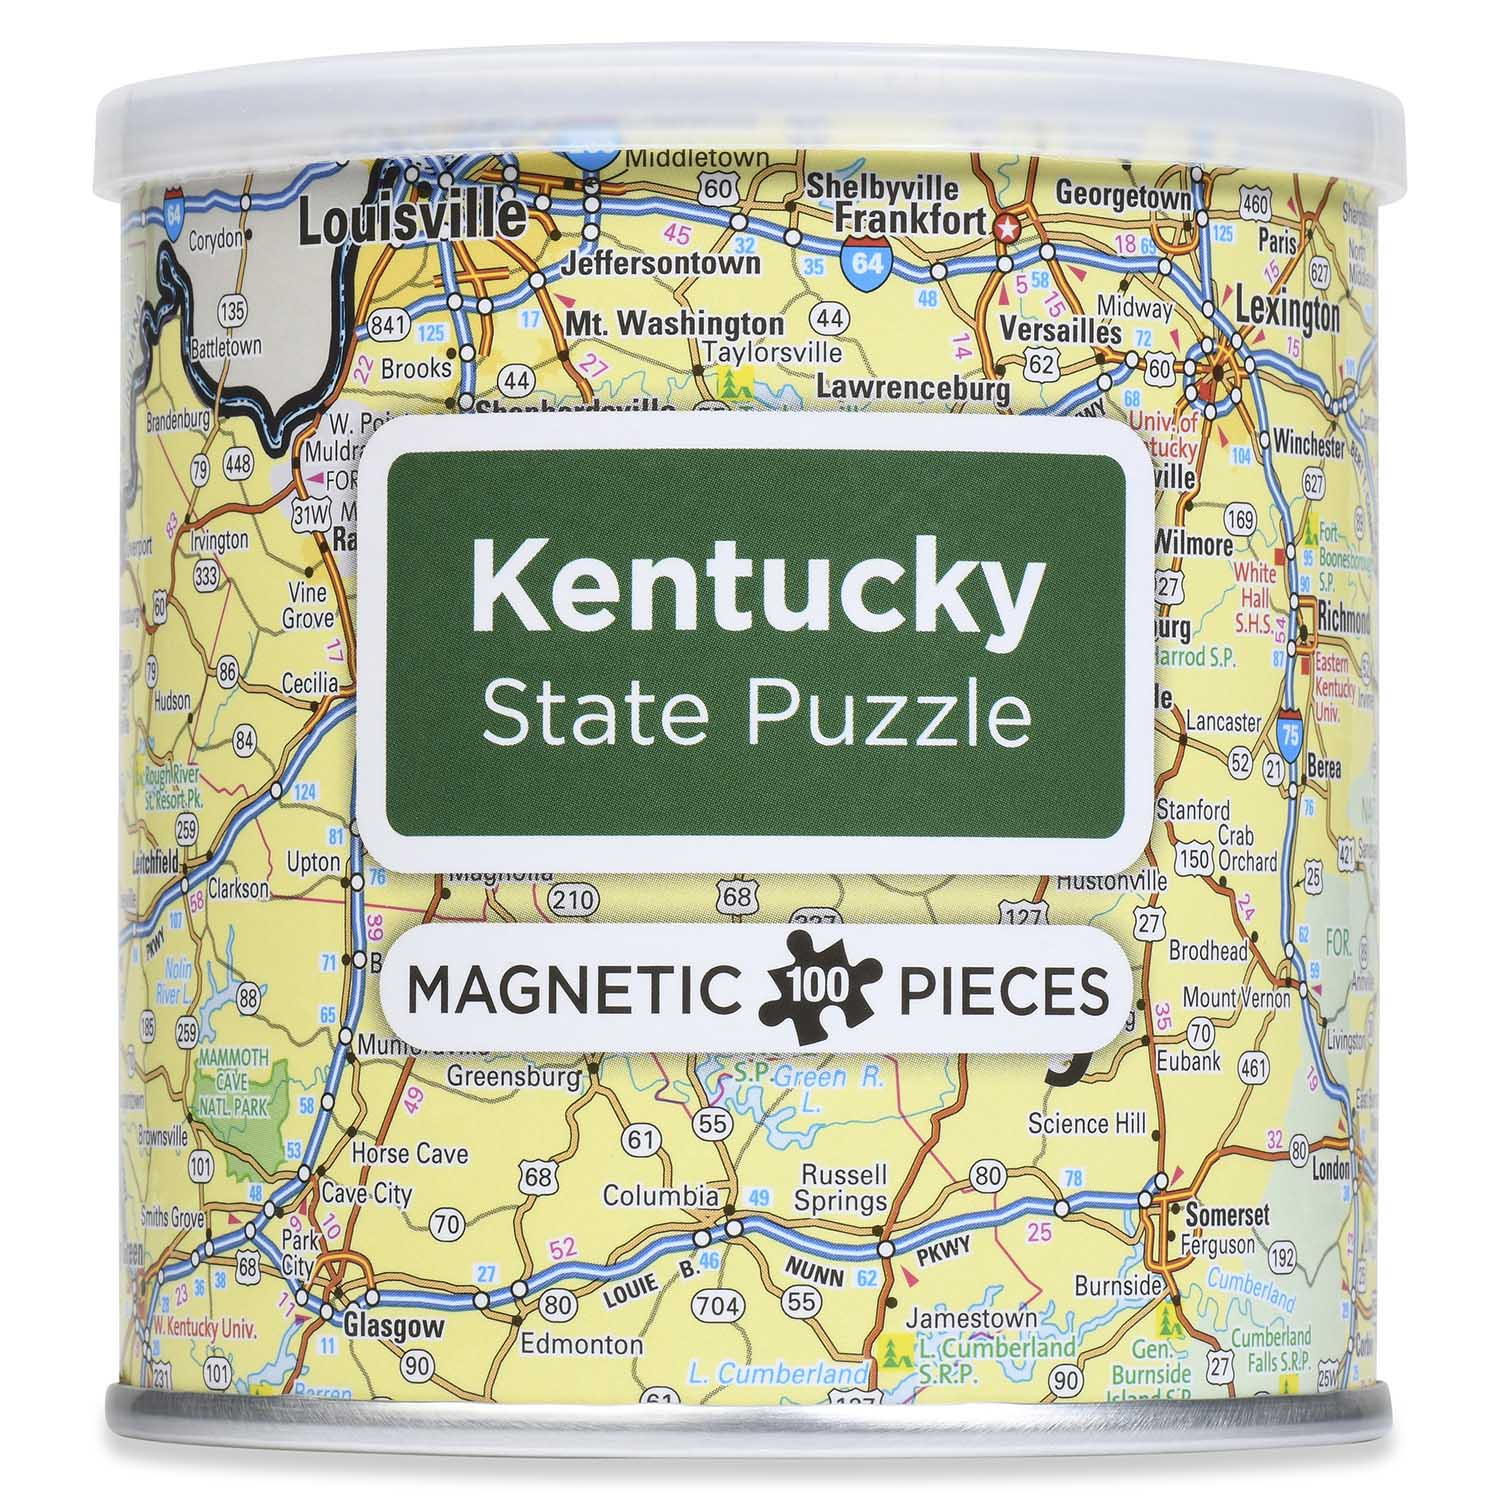 City Magnetic Puzzle Kentucky Cities Jigsaw Puzzle